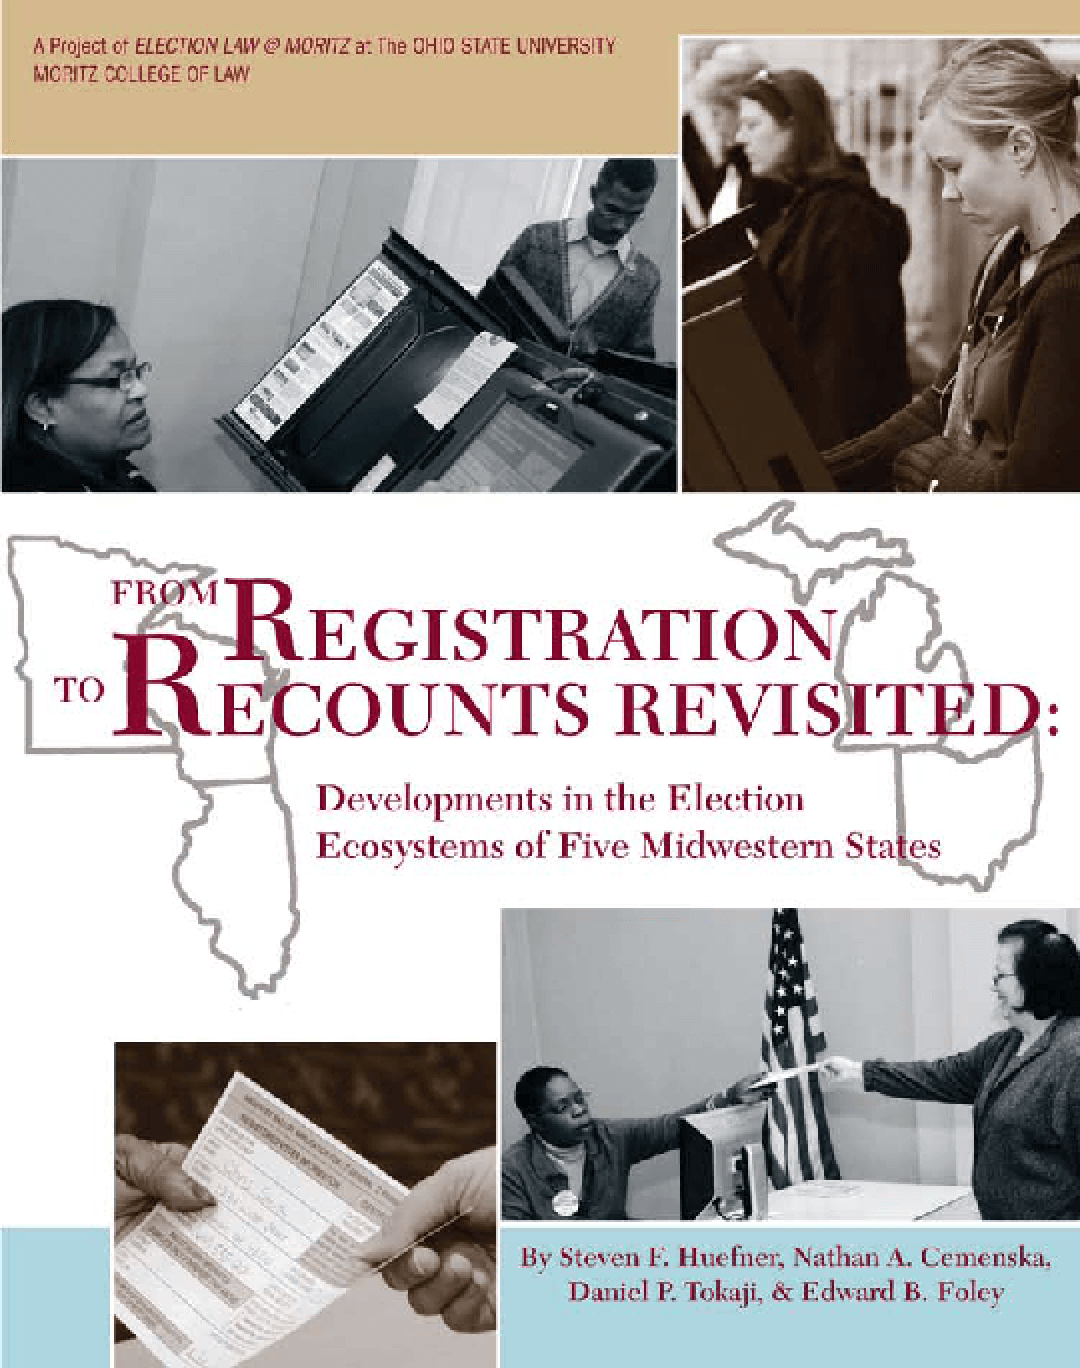 From Registration to Recounts Revisited: Developments in the Election Ecosystems of Five Midwestern States